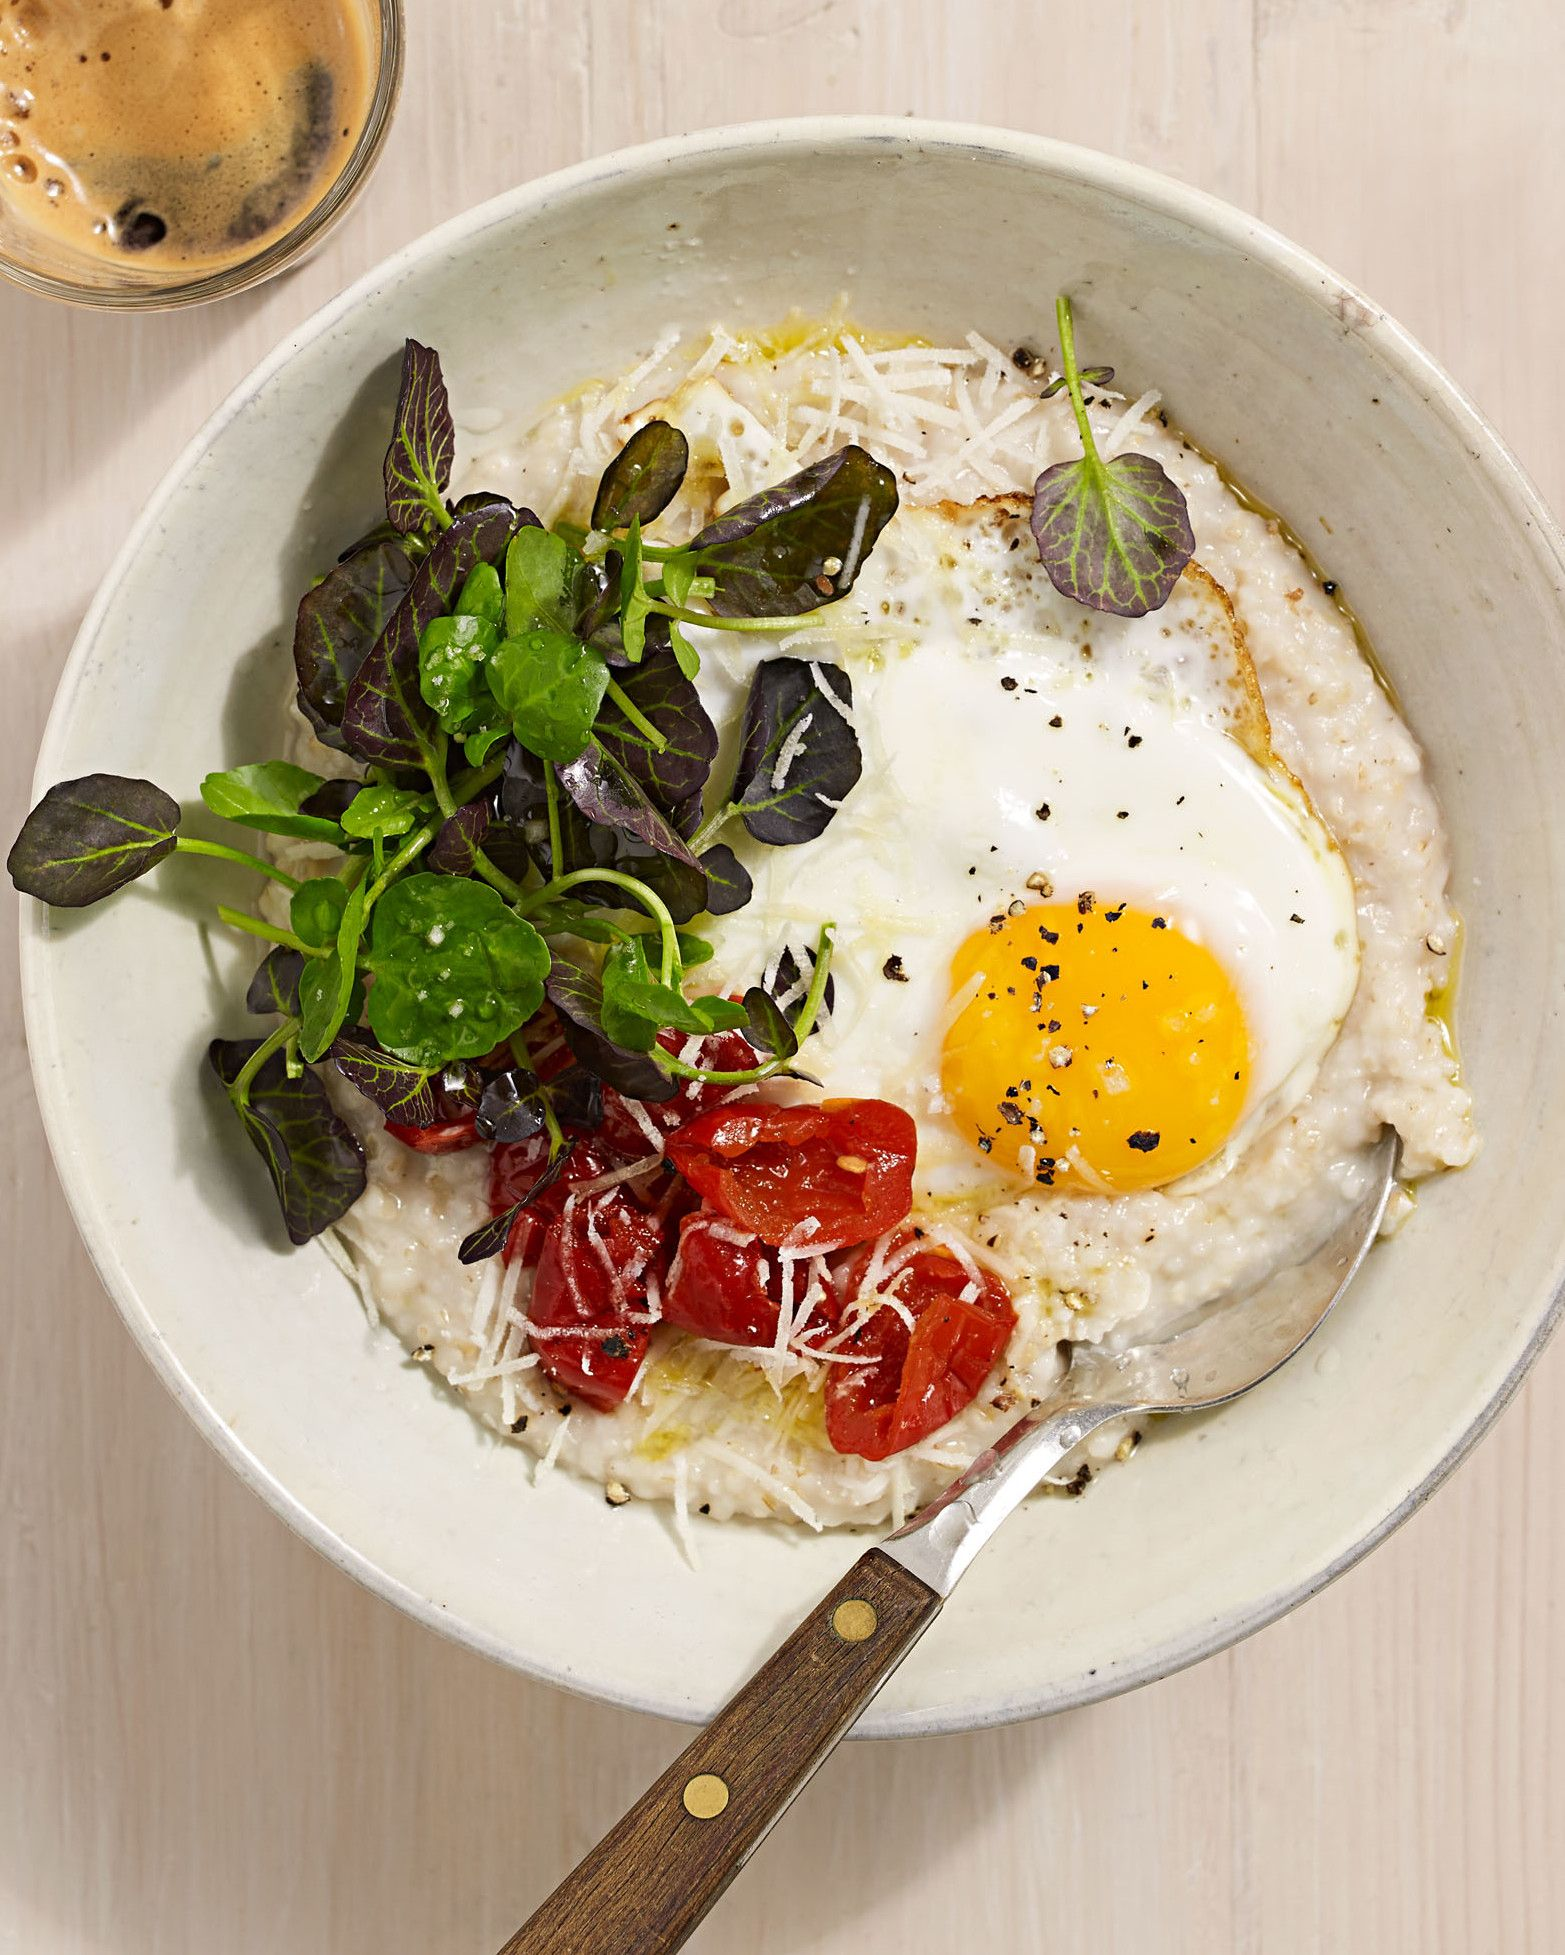 Creamy Parmesan Oats with Fried Egg Recipe